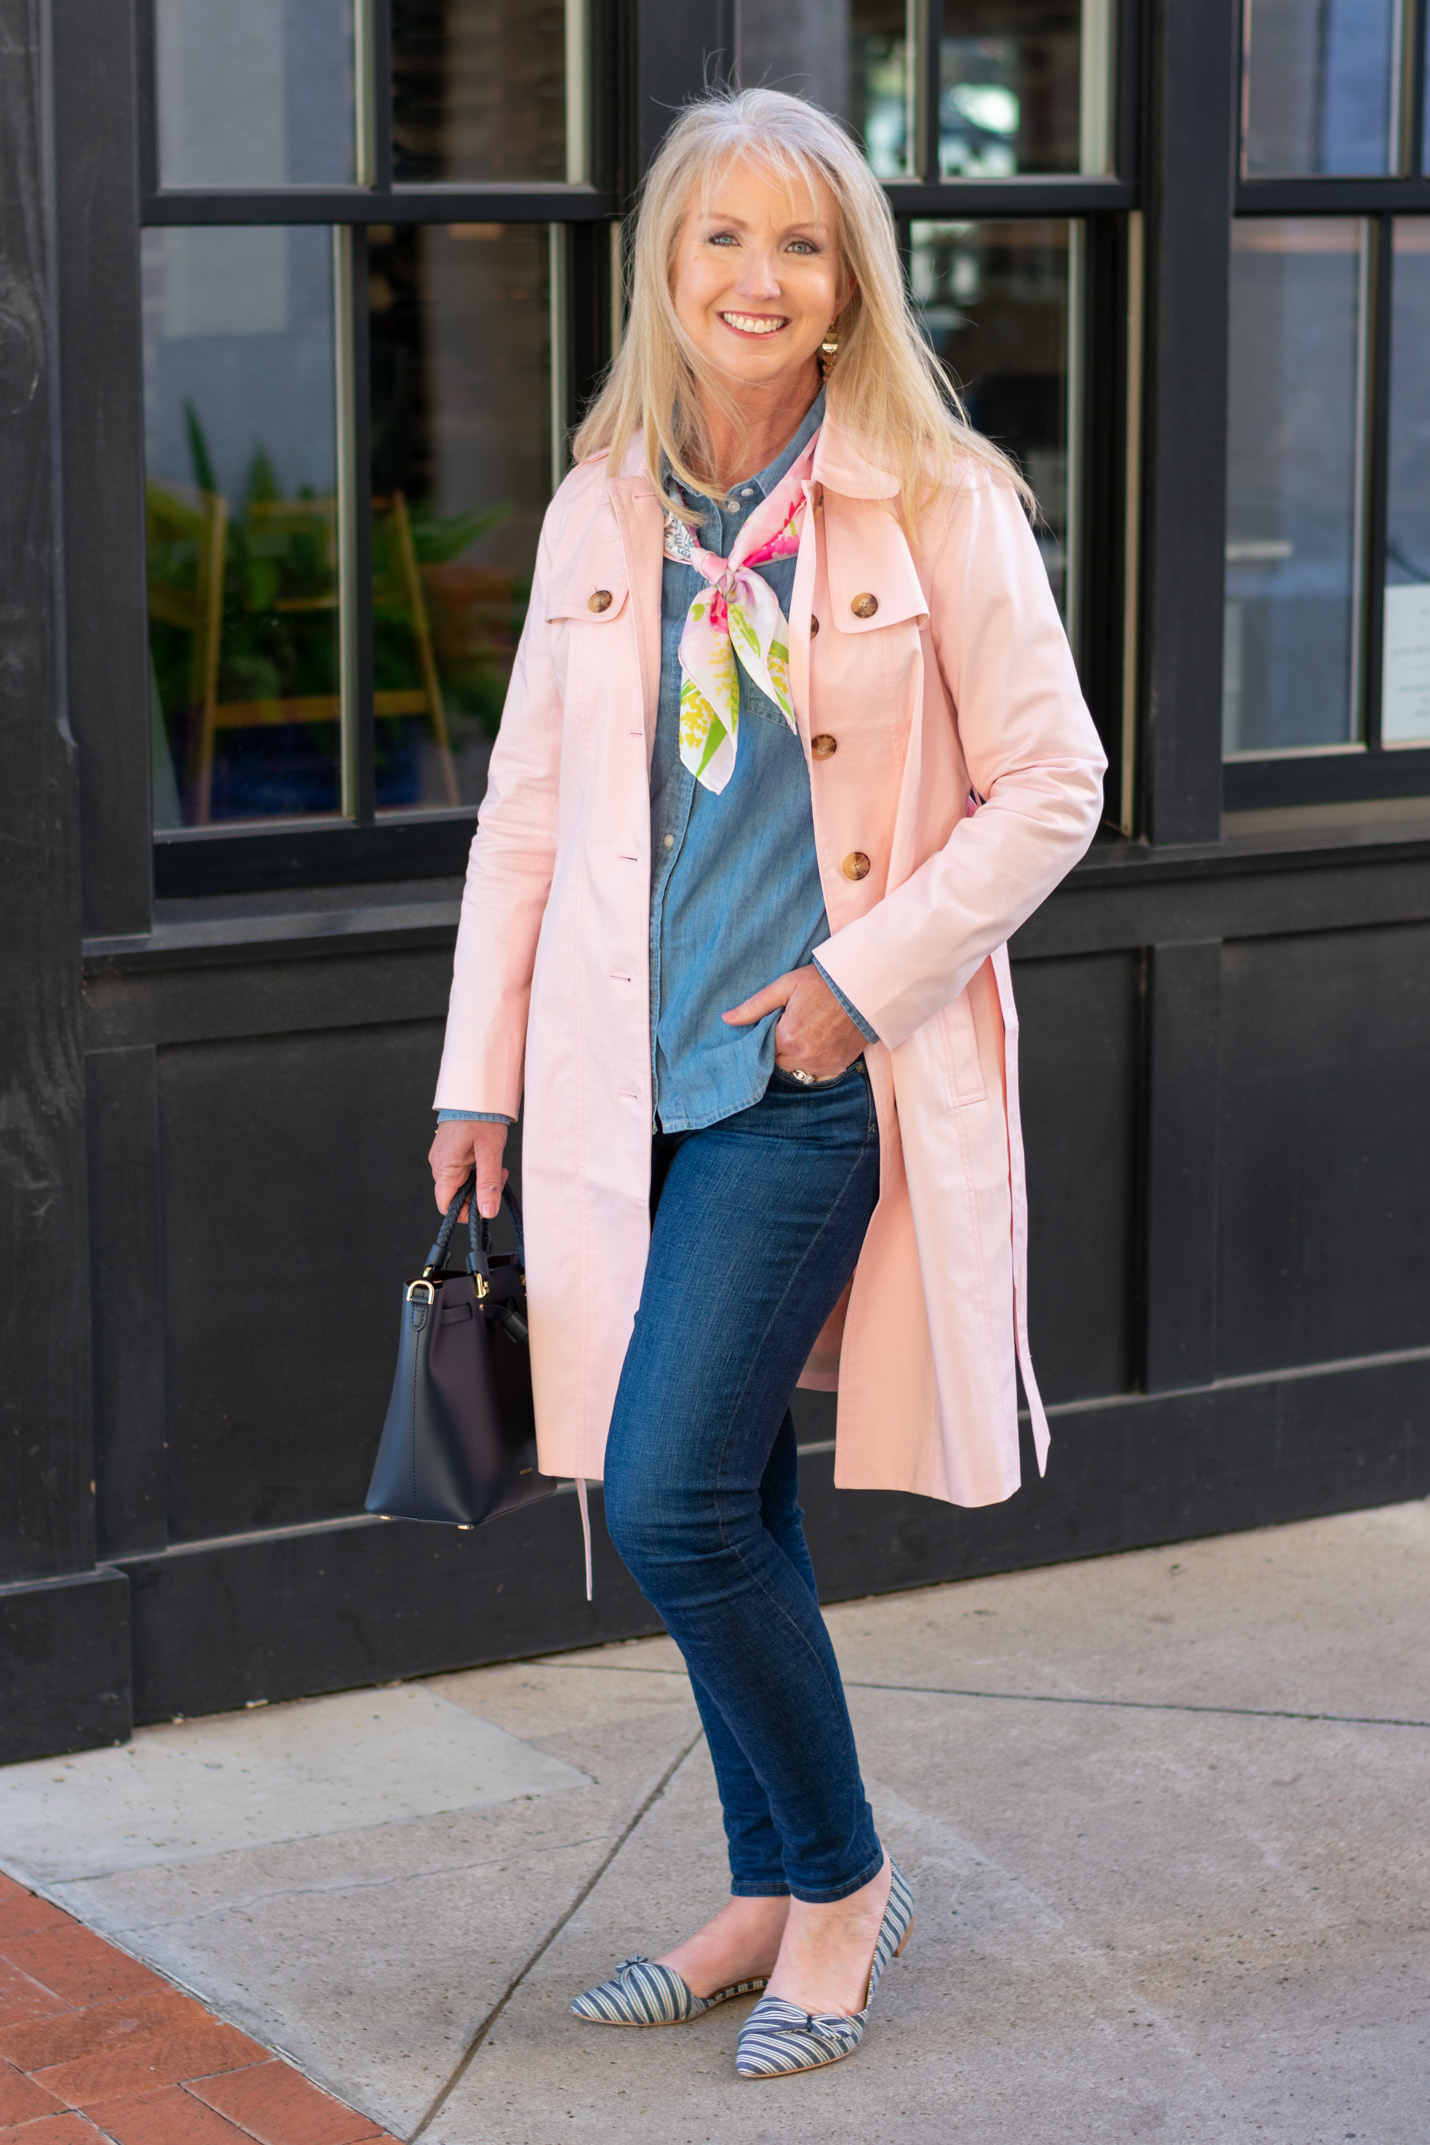 A Trench Coat for Spring